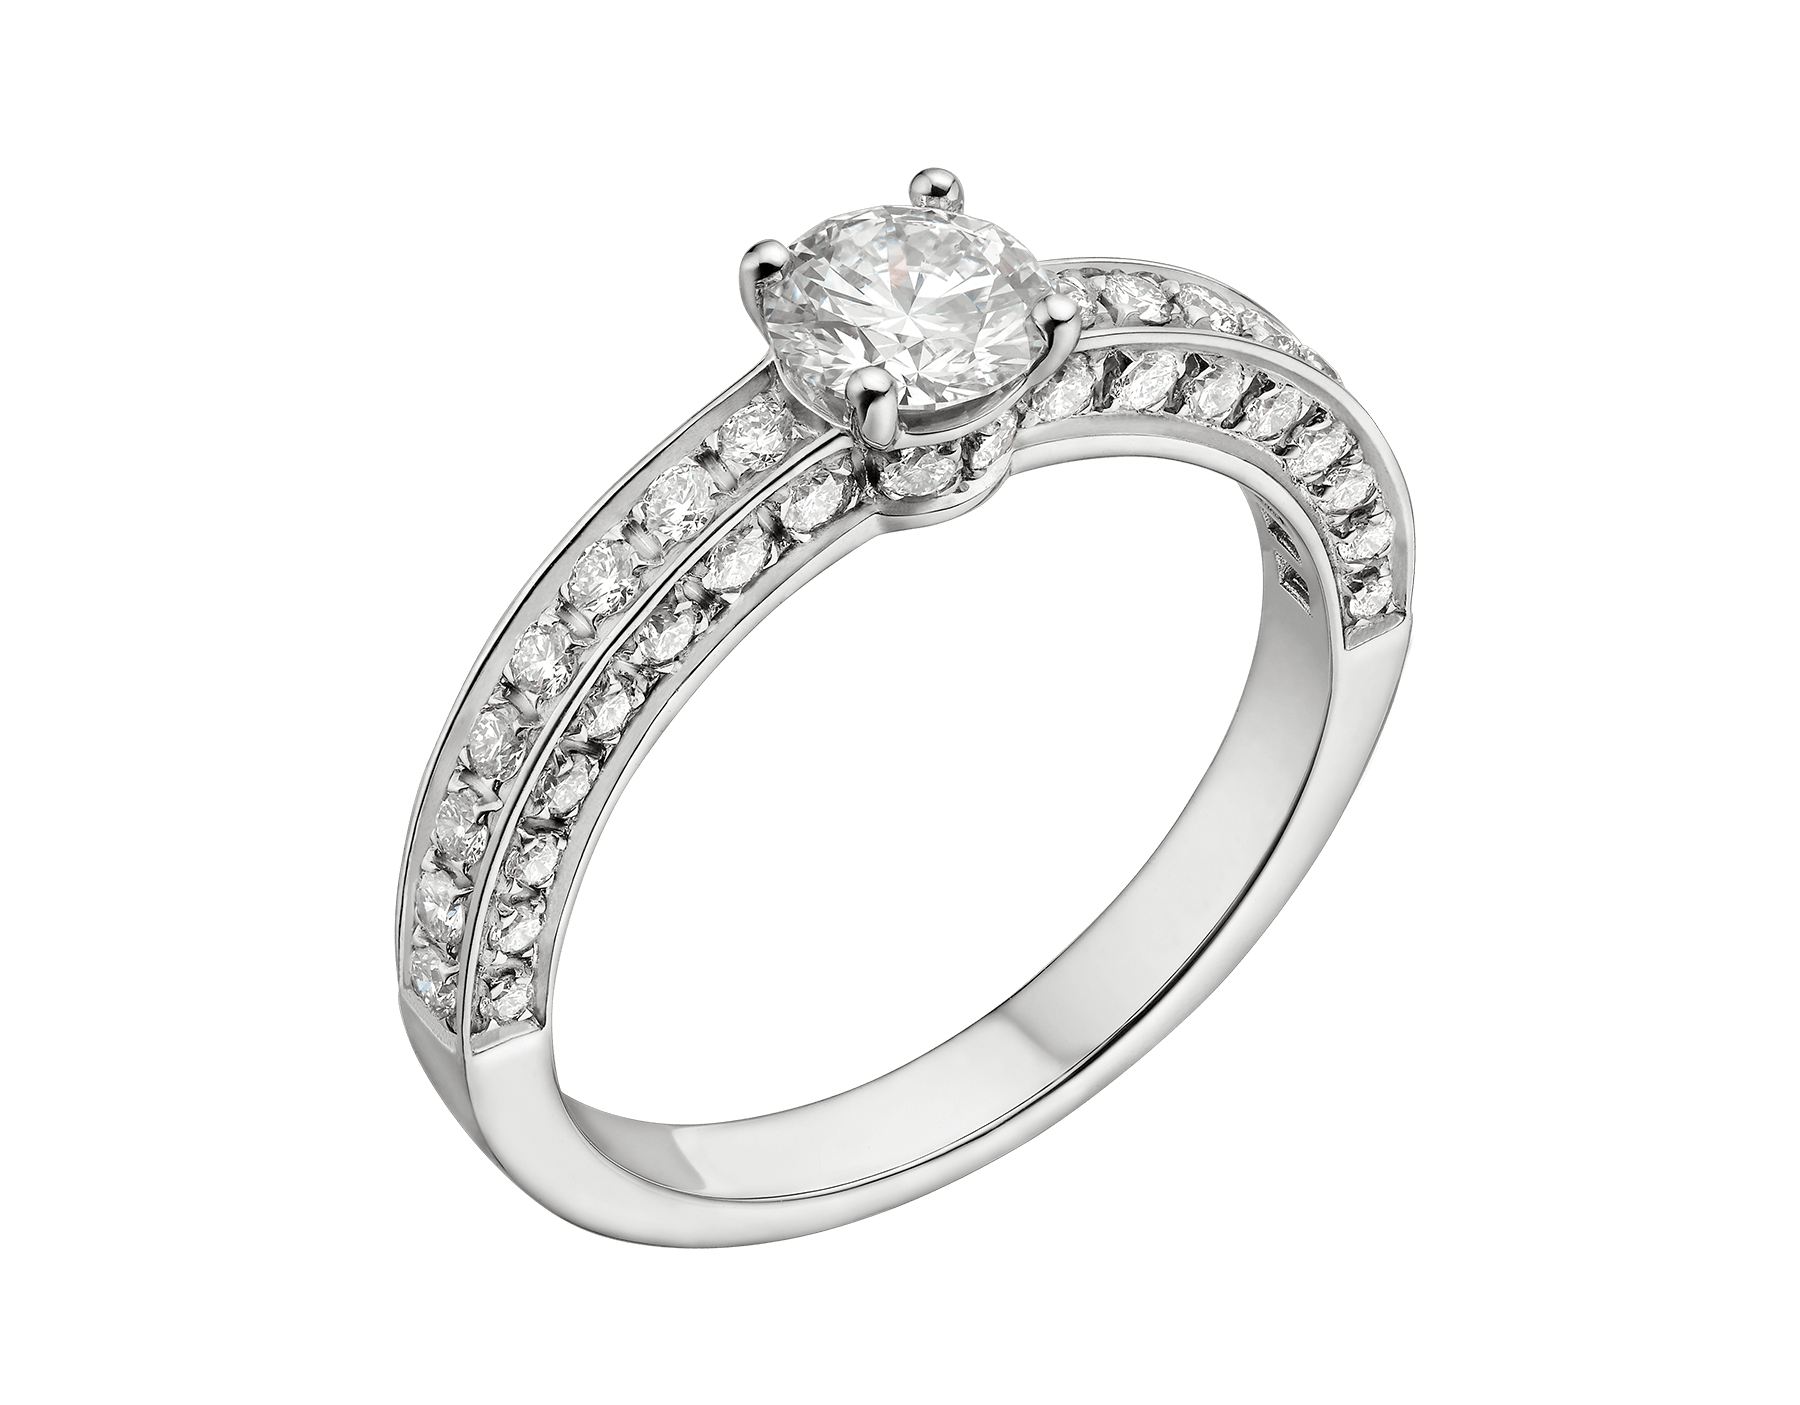 Dedicata a Venezia: 1503 solitaire ring in platinum with a round brilliant-cut diamond and pavé diamonds. Available from 0.30 ct. Named after the year in which the first engagement ring was offered in Venice. 348444 image 1